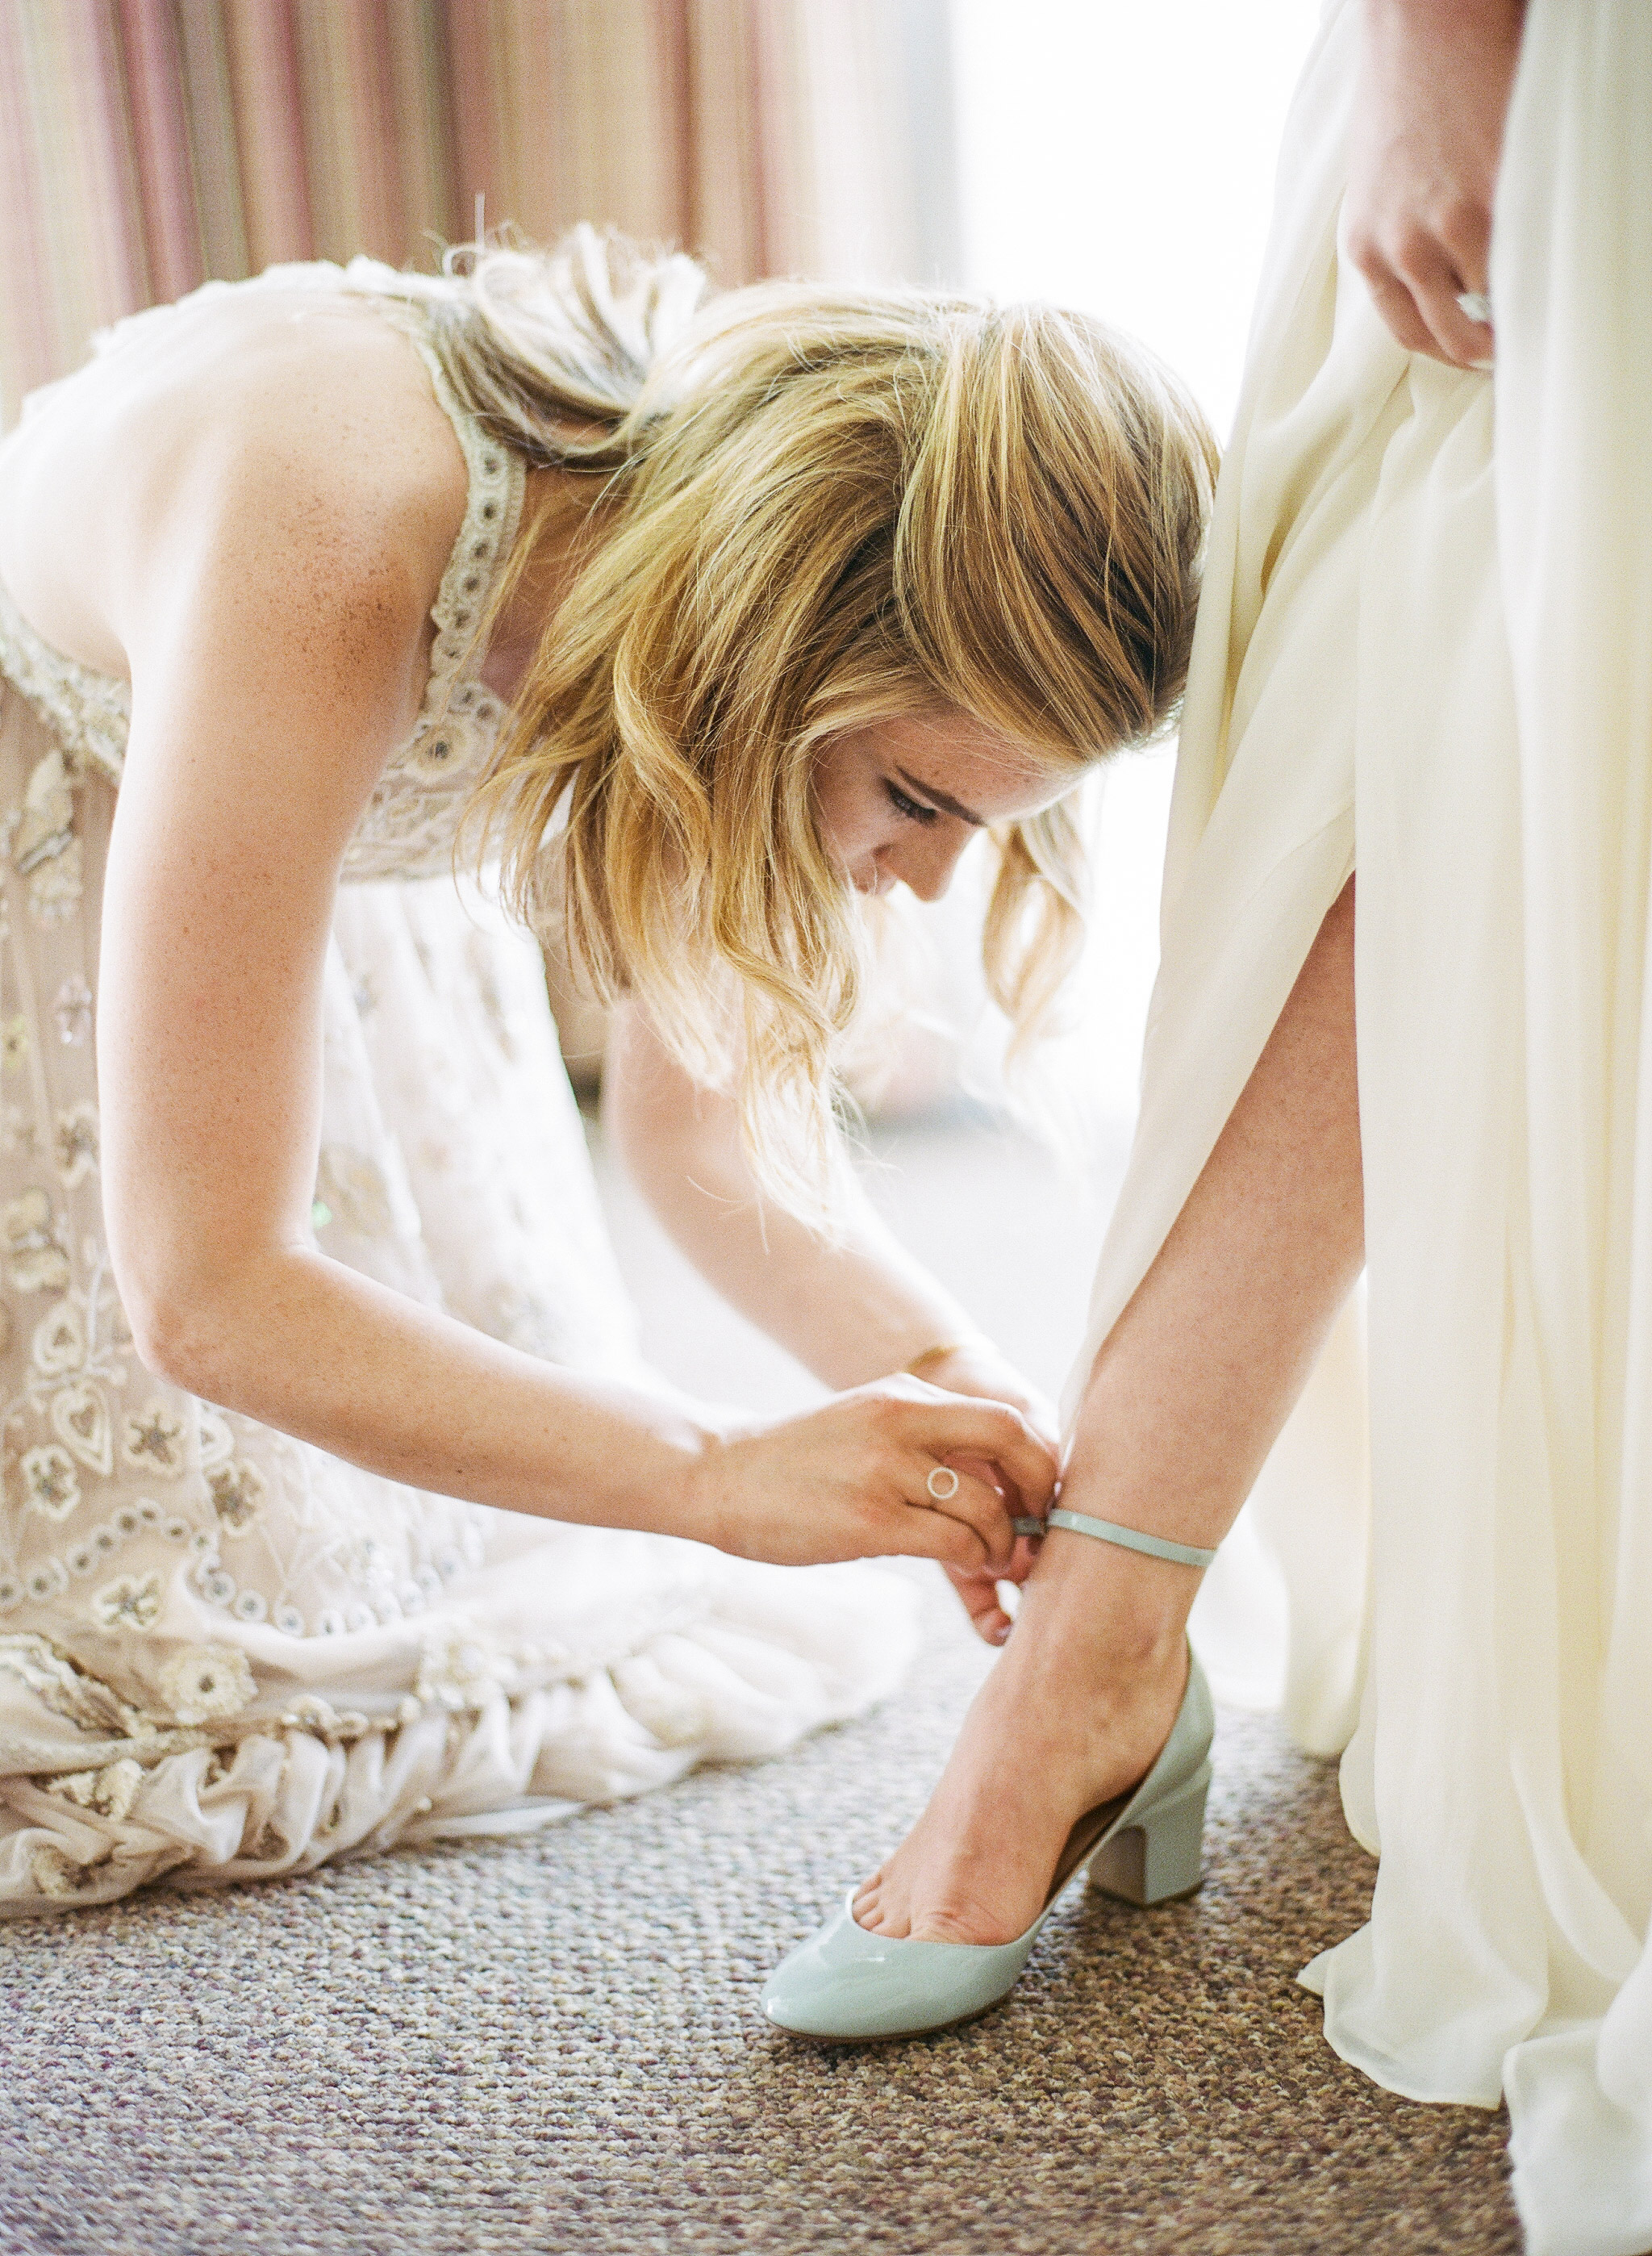 Should You Purchase Two Pairs of Shoes for Your Wedding Day?